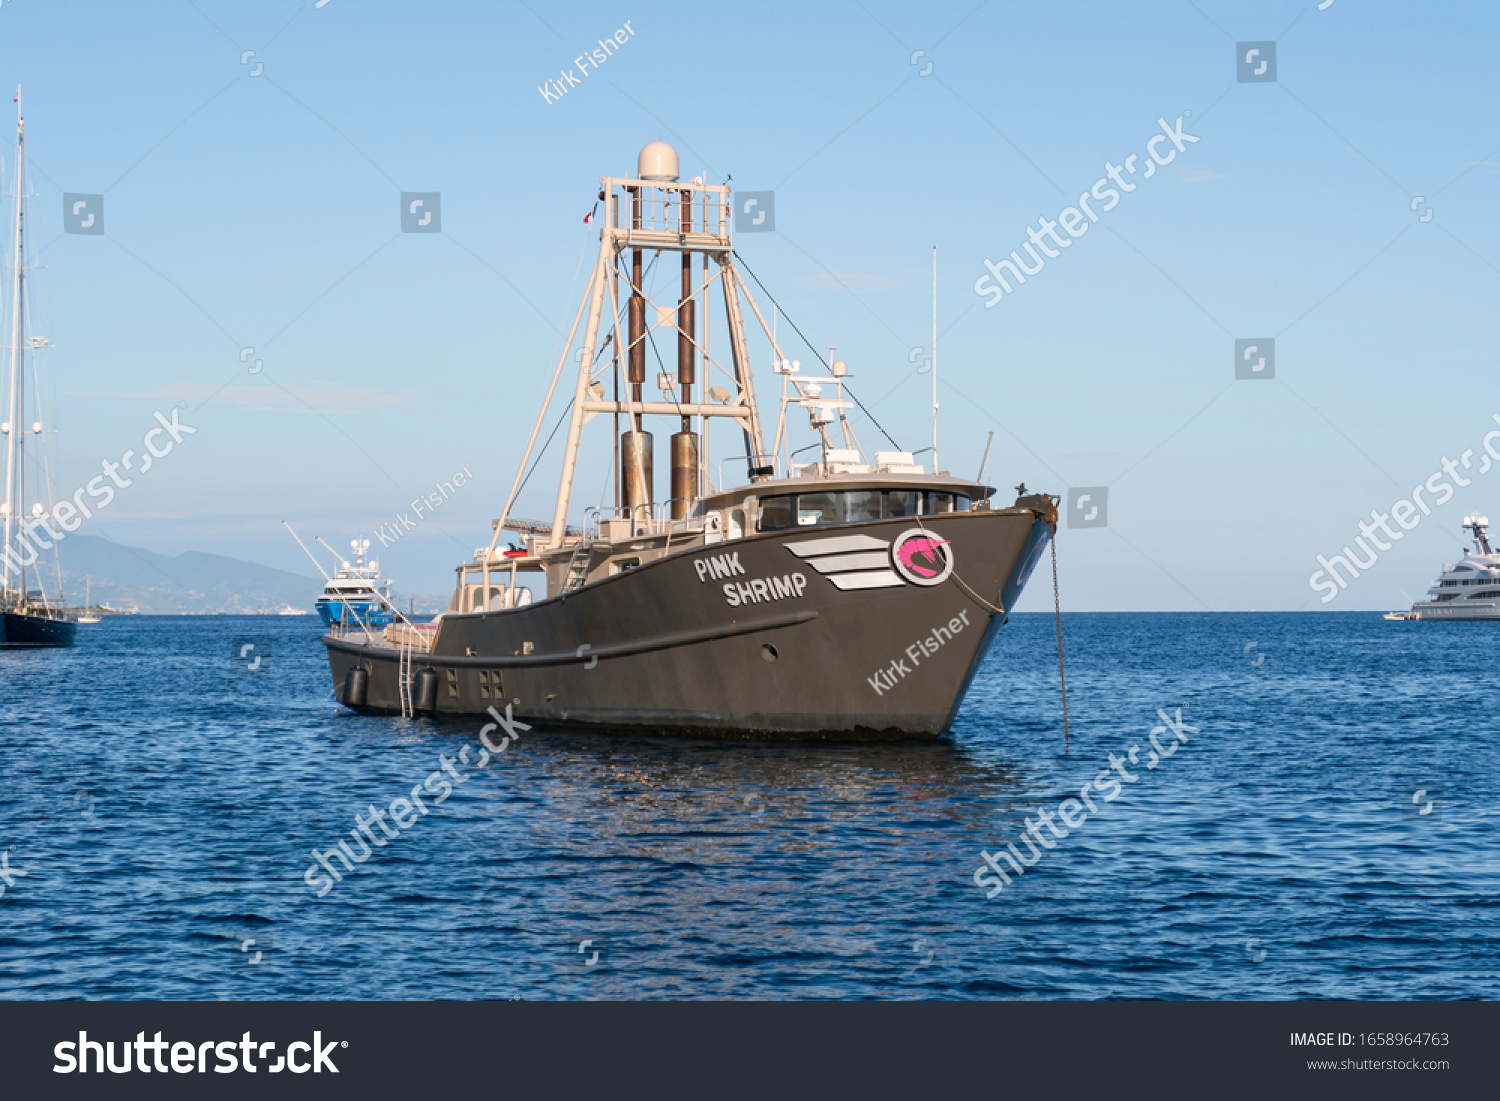 Villefranche Sur Mer, France - September 28 2019: A black shrimp boat trawls for shrimp in a bay along the Southern coast of France near the French Riviera.